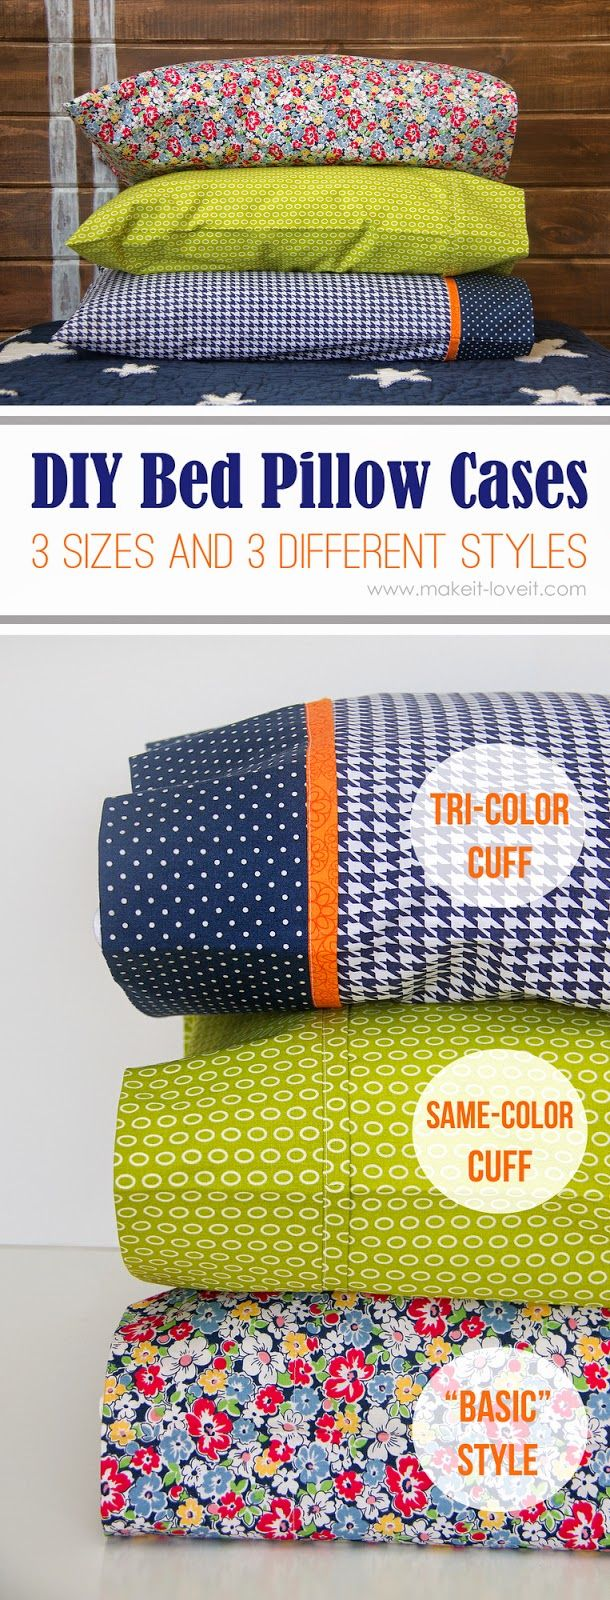 Easy Pillow Case Sewing Tutorial & Easy Pillow Case Sewing Tutorial (Sew Pretty Sew Free) | Pillow ... pillowsntoast.com